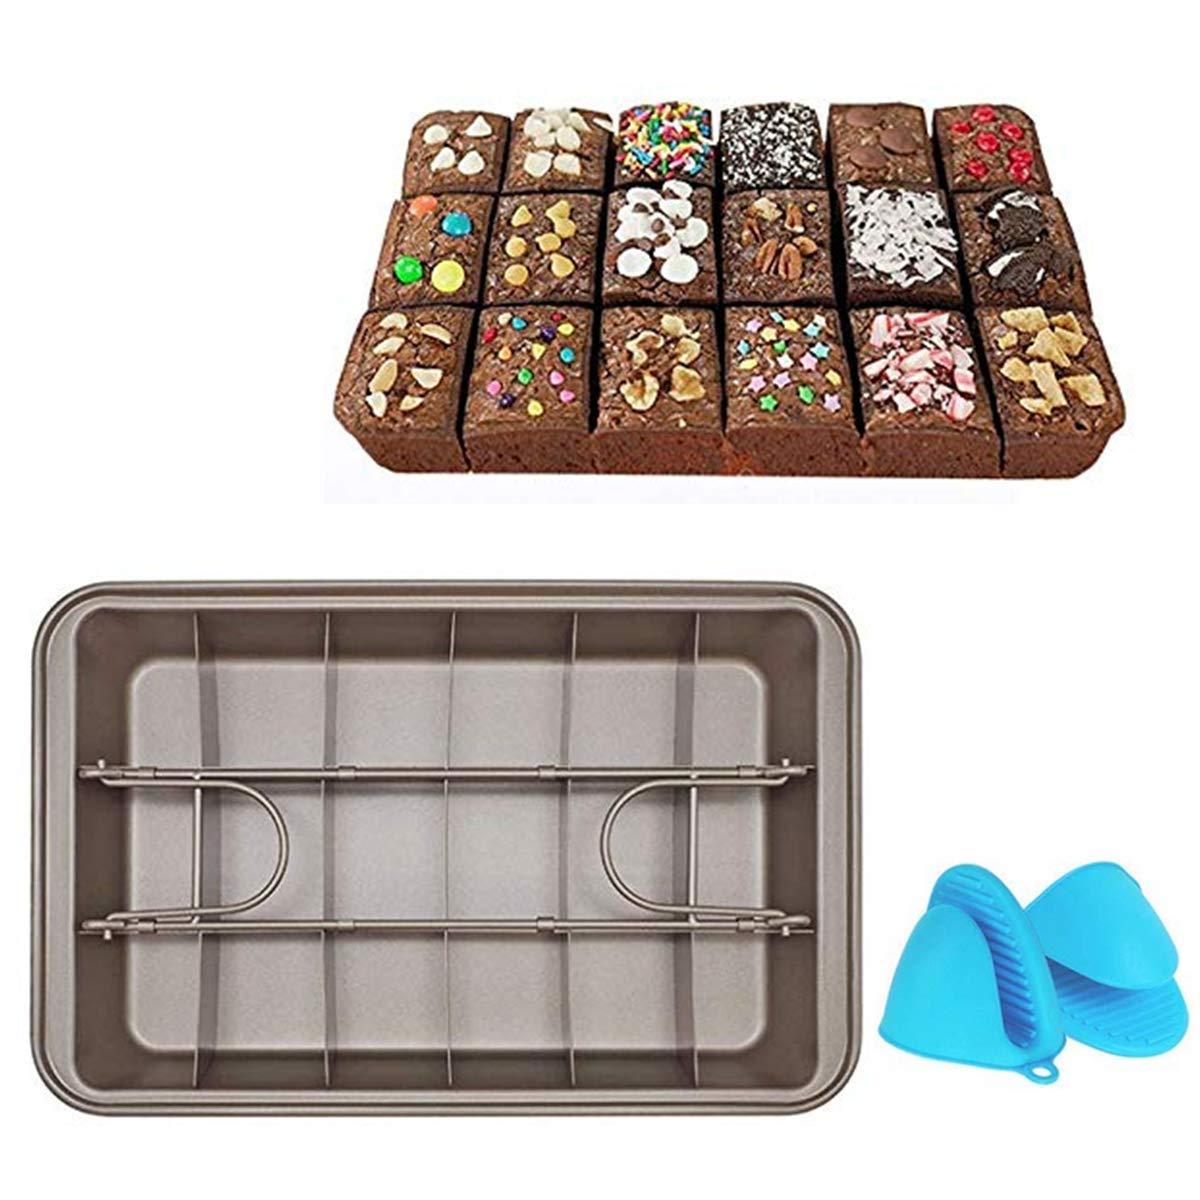 Fyuan Non-Stick Pan Tin, Heavy-Duty Divided Brownie Tray, Carbon Steel Bakeware for Oven Baking, 18-Cavity, 12 x 8inch, Comes with Silicone Gloves